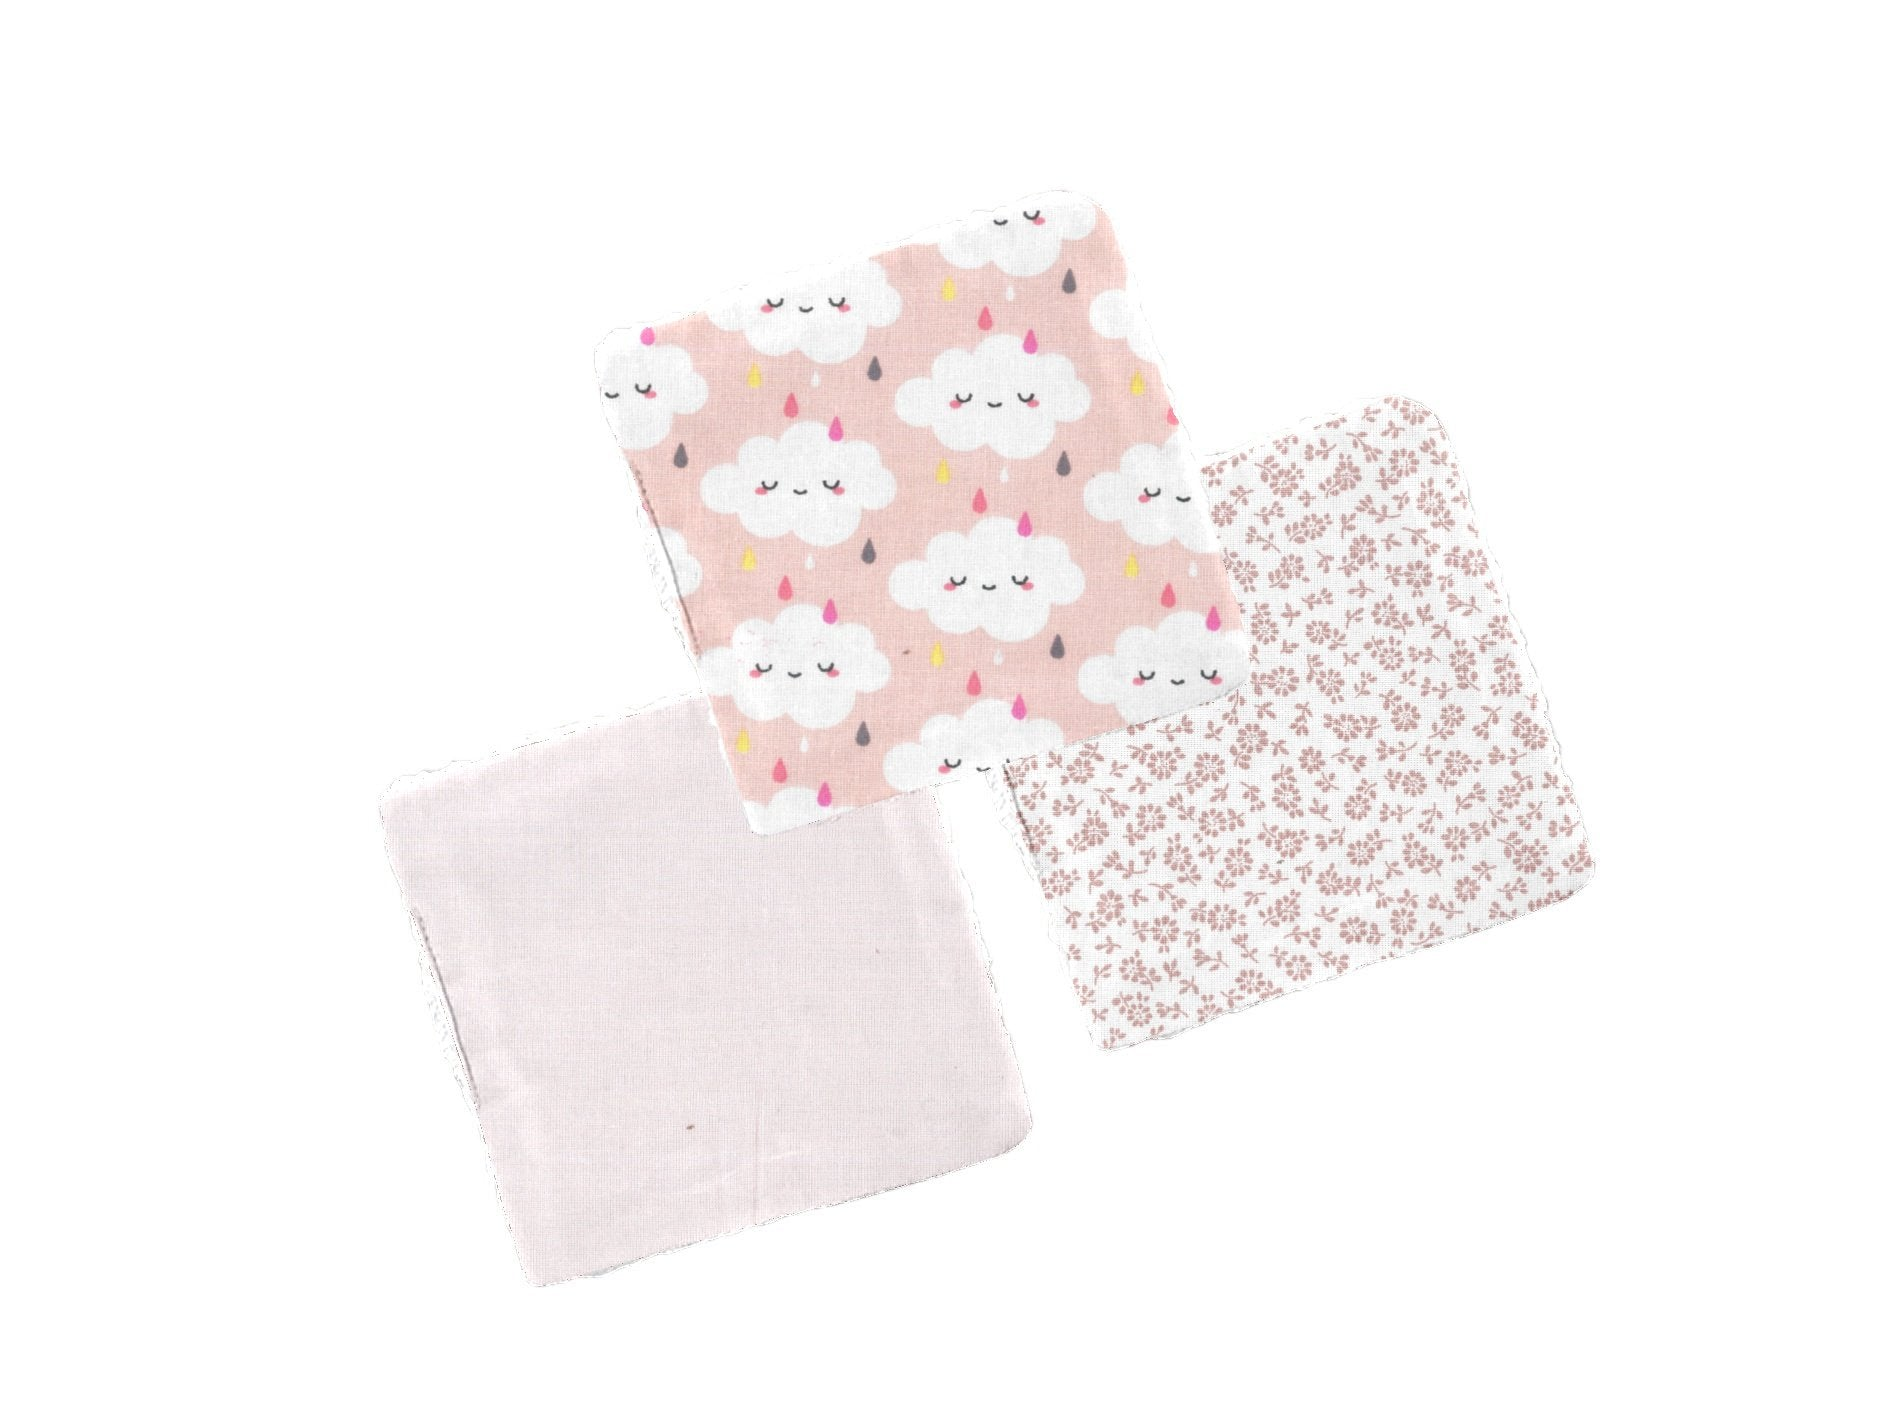 Carré démaquillant lot de 3 :  Nuage rose - lesbobinescreatives